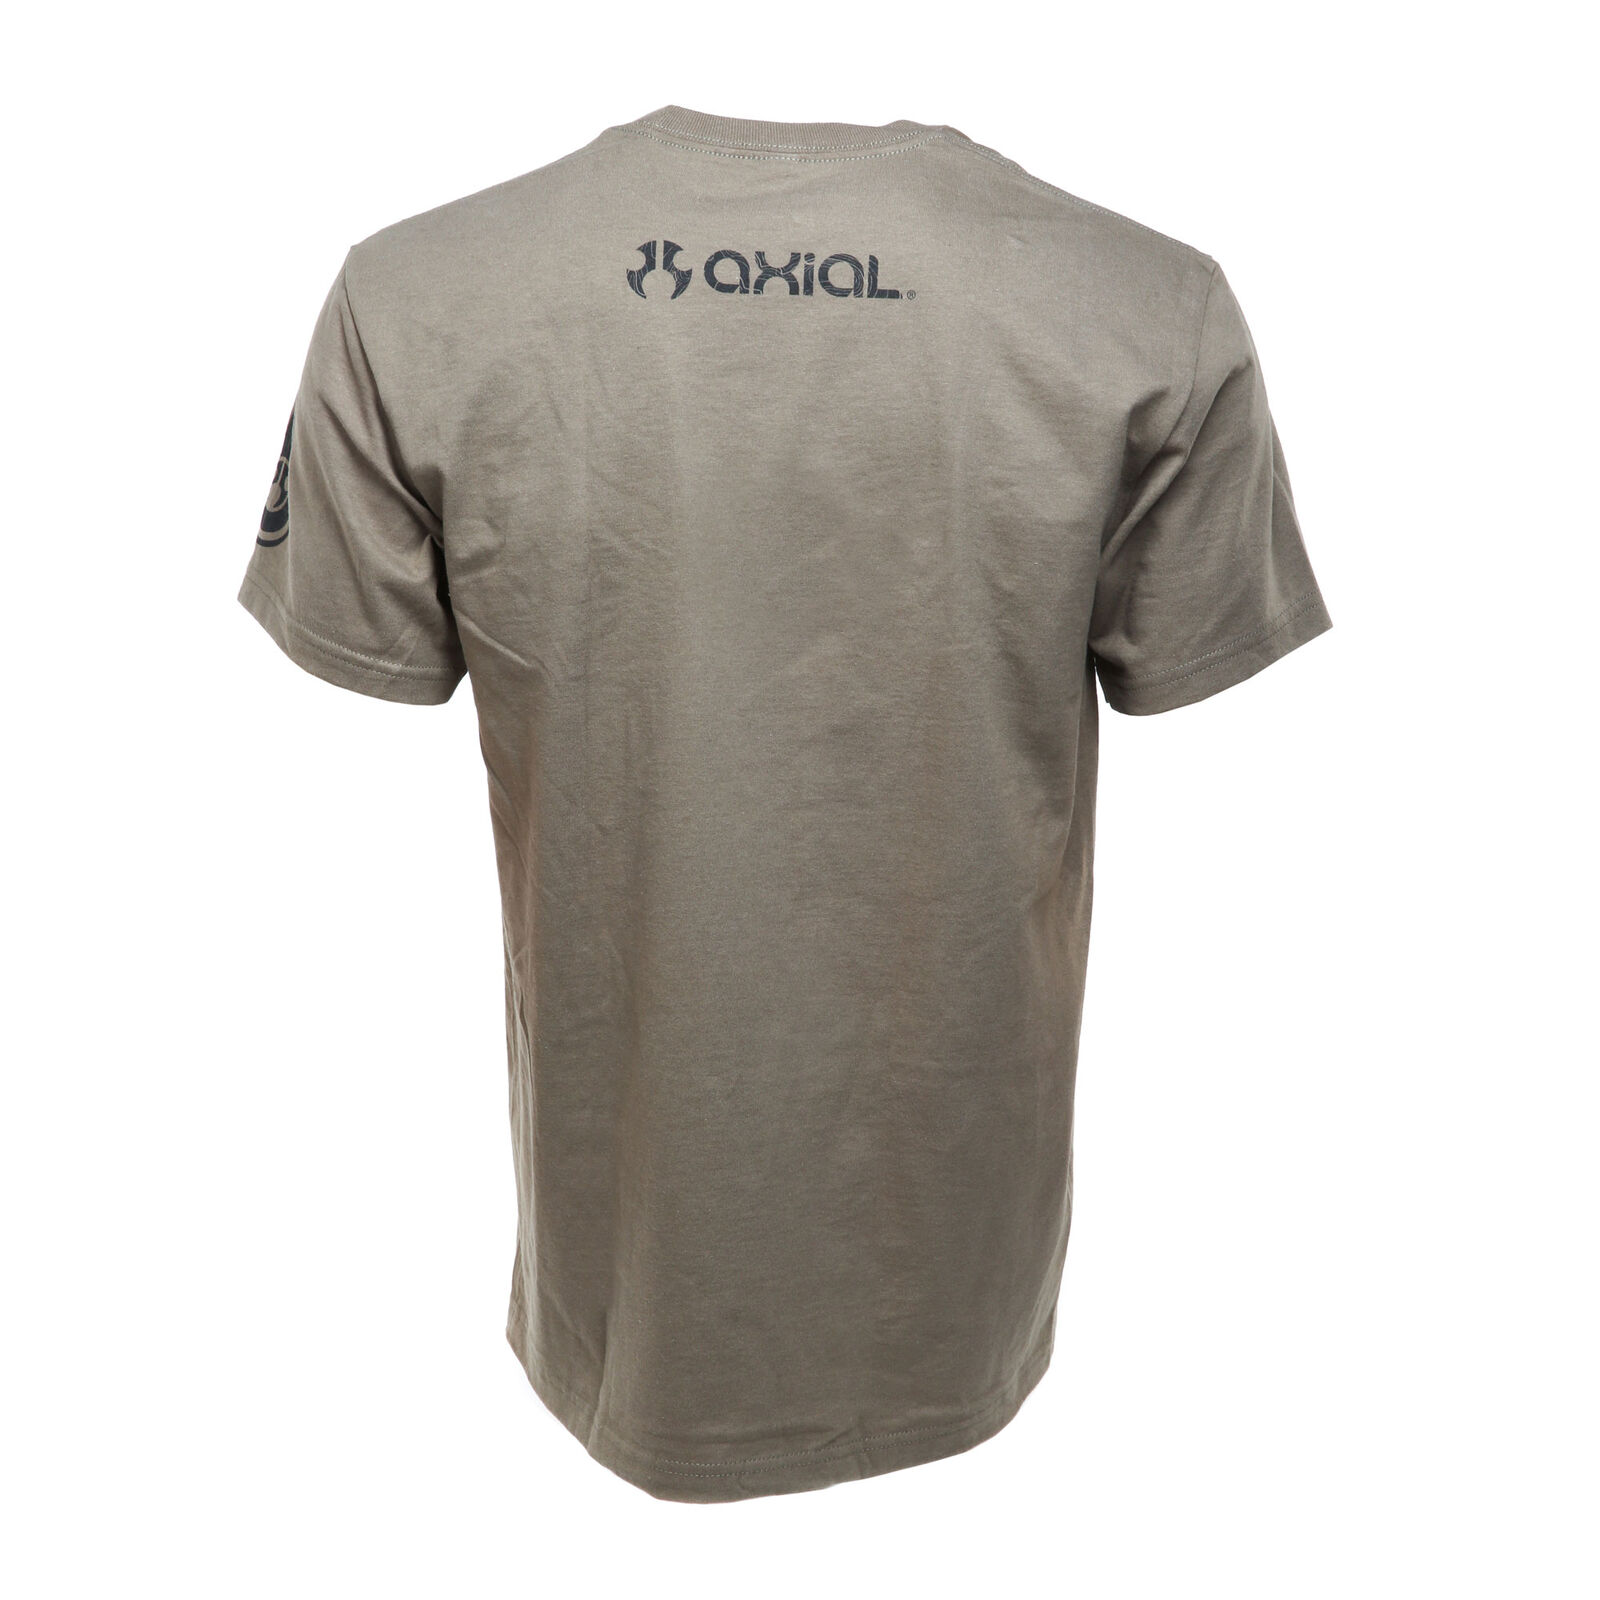 Topography Shirt, Small